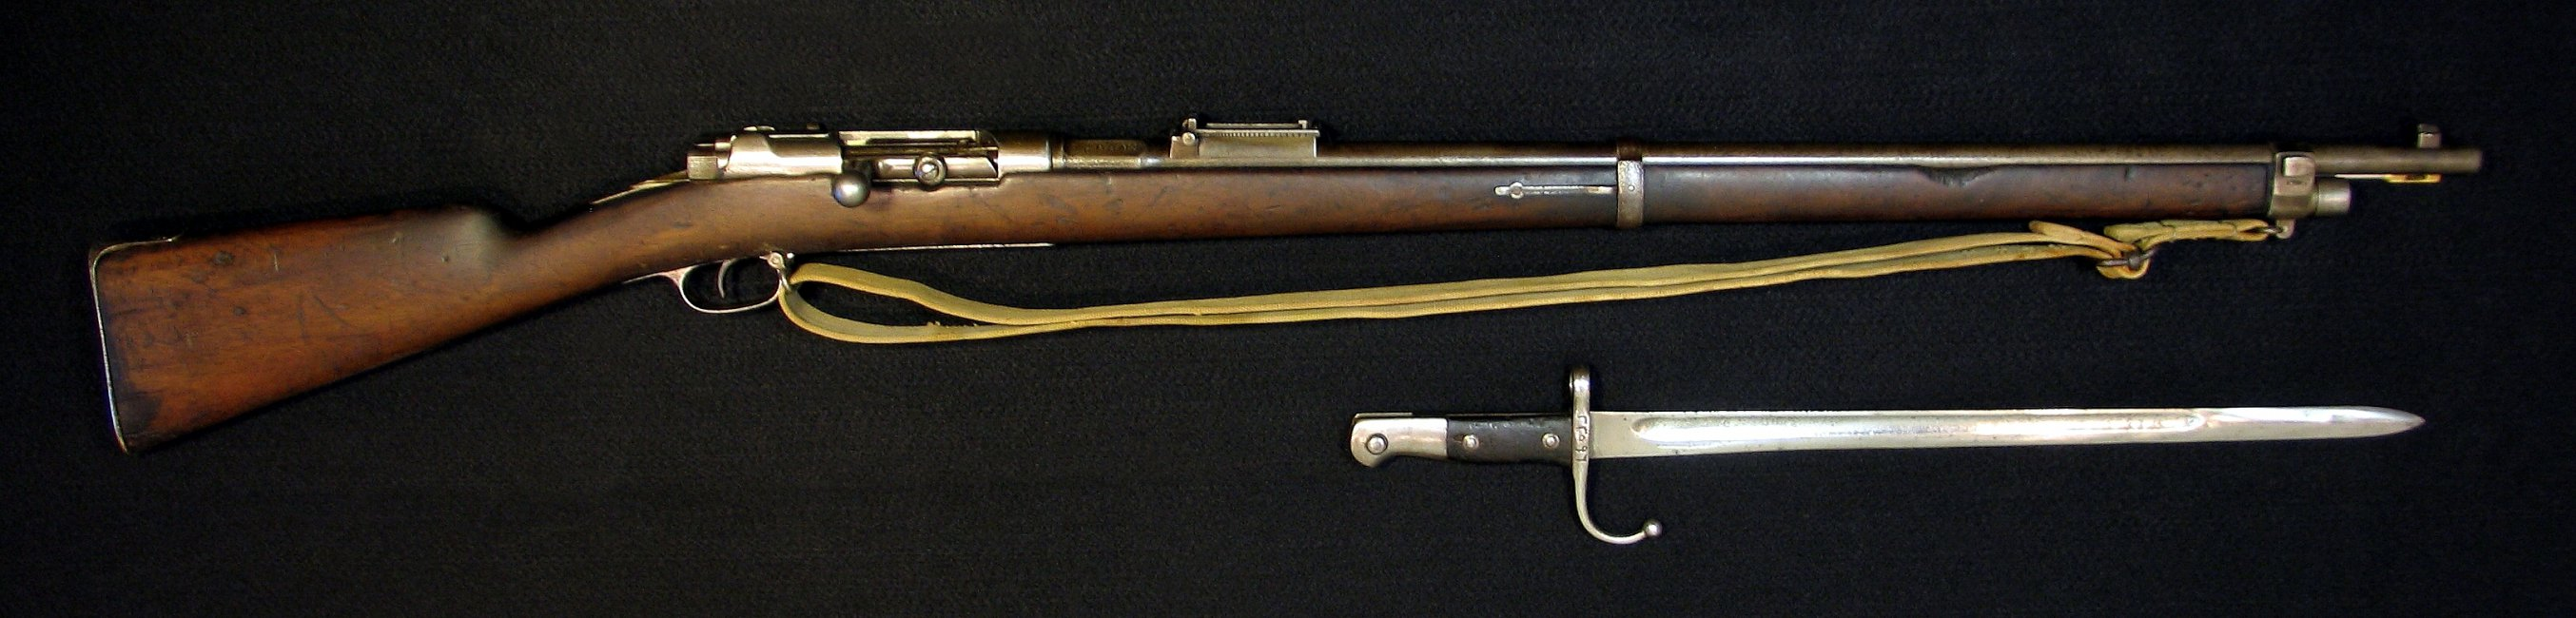 Click image for larger version.  Name:Turkish M1887 w Bayonet 008R.jpg Views:16 Size:284.6 KB ID:1539617